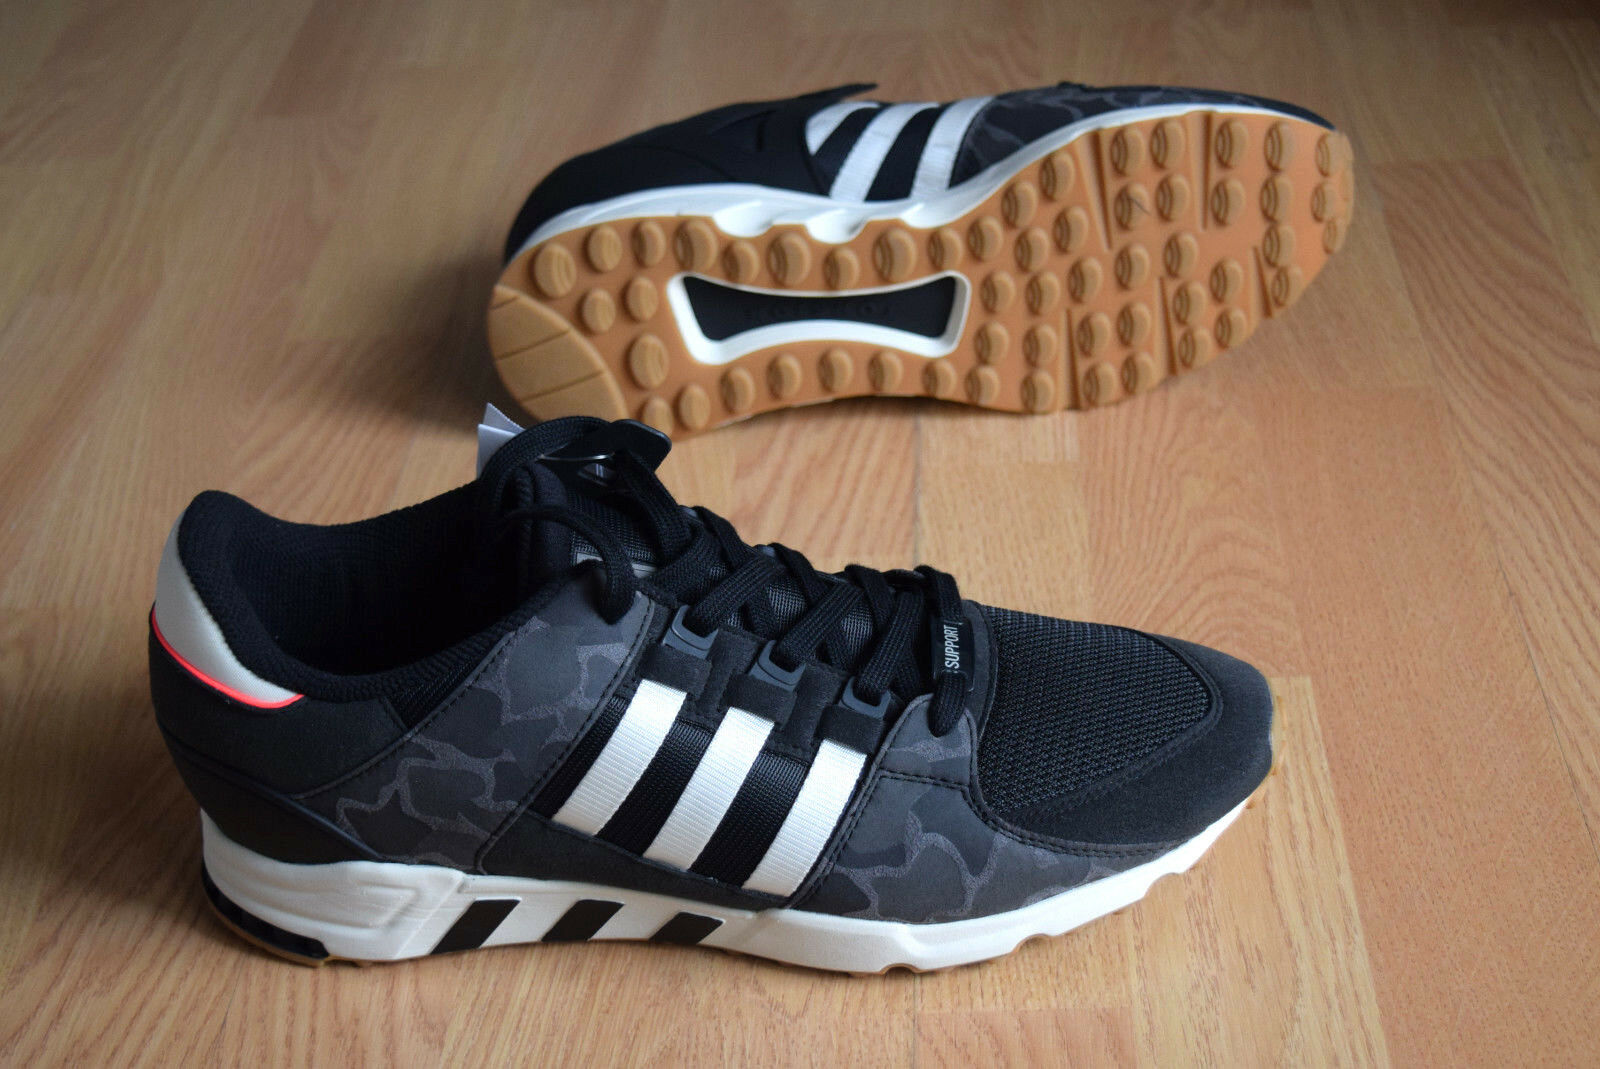 Adidas Equipment Equipment Equipment Support RF 40 41 42 43 44 45 47 49 BB1324 cOnSorTium guidance b9eacf